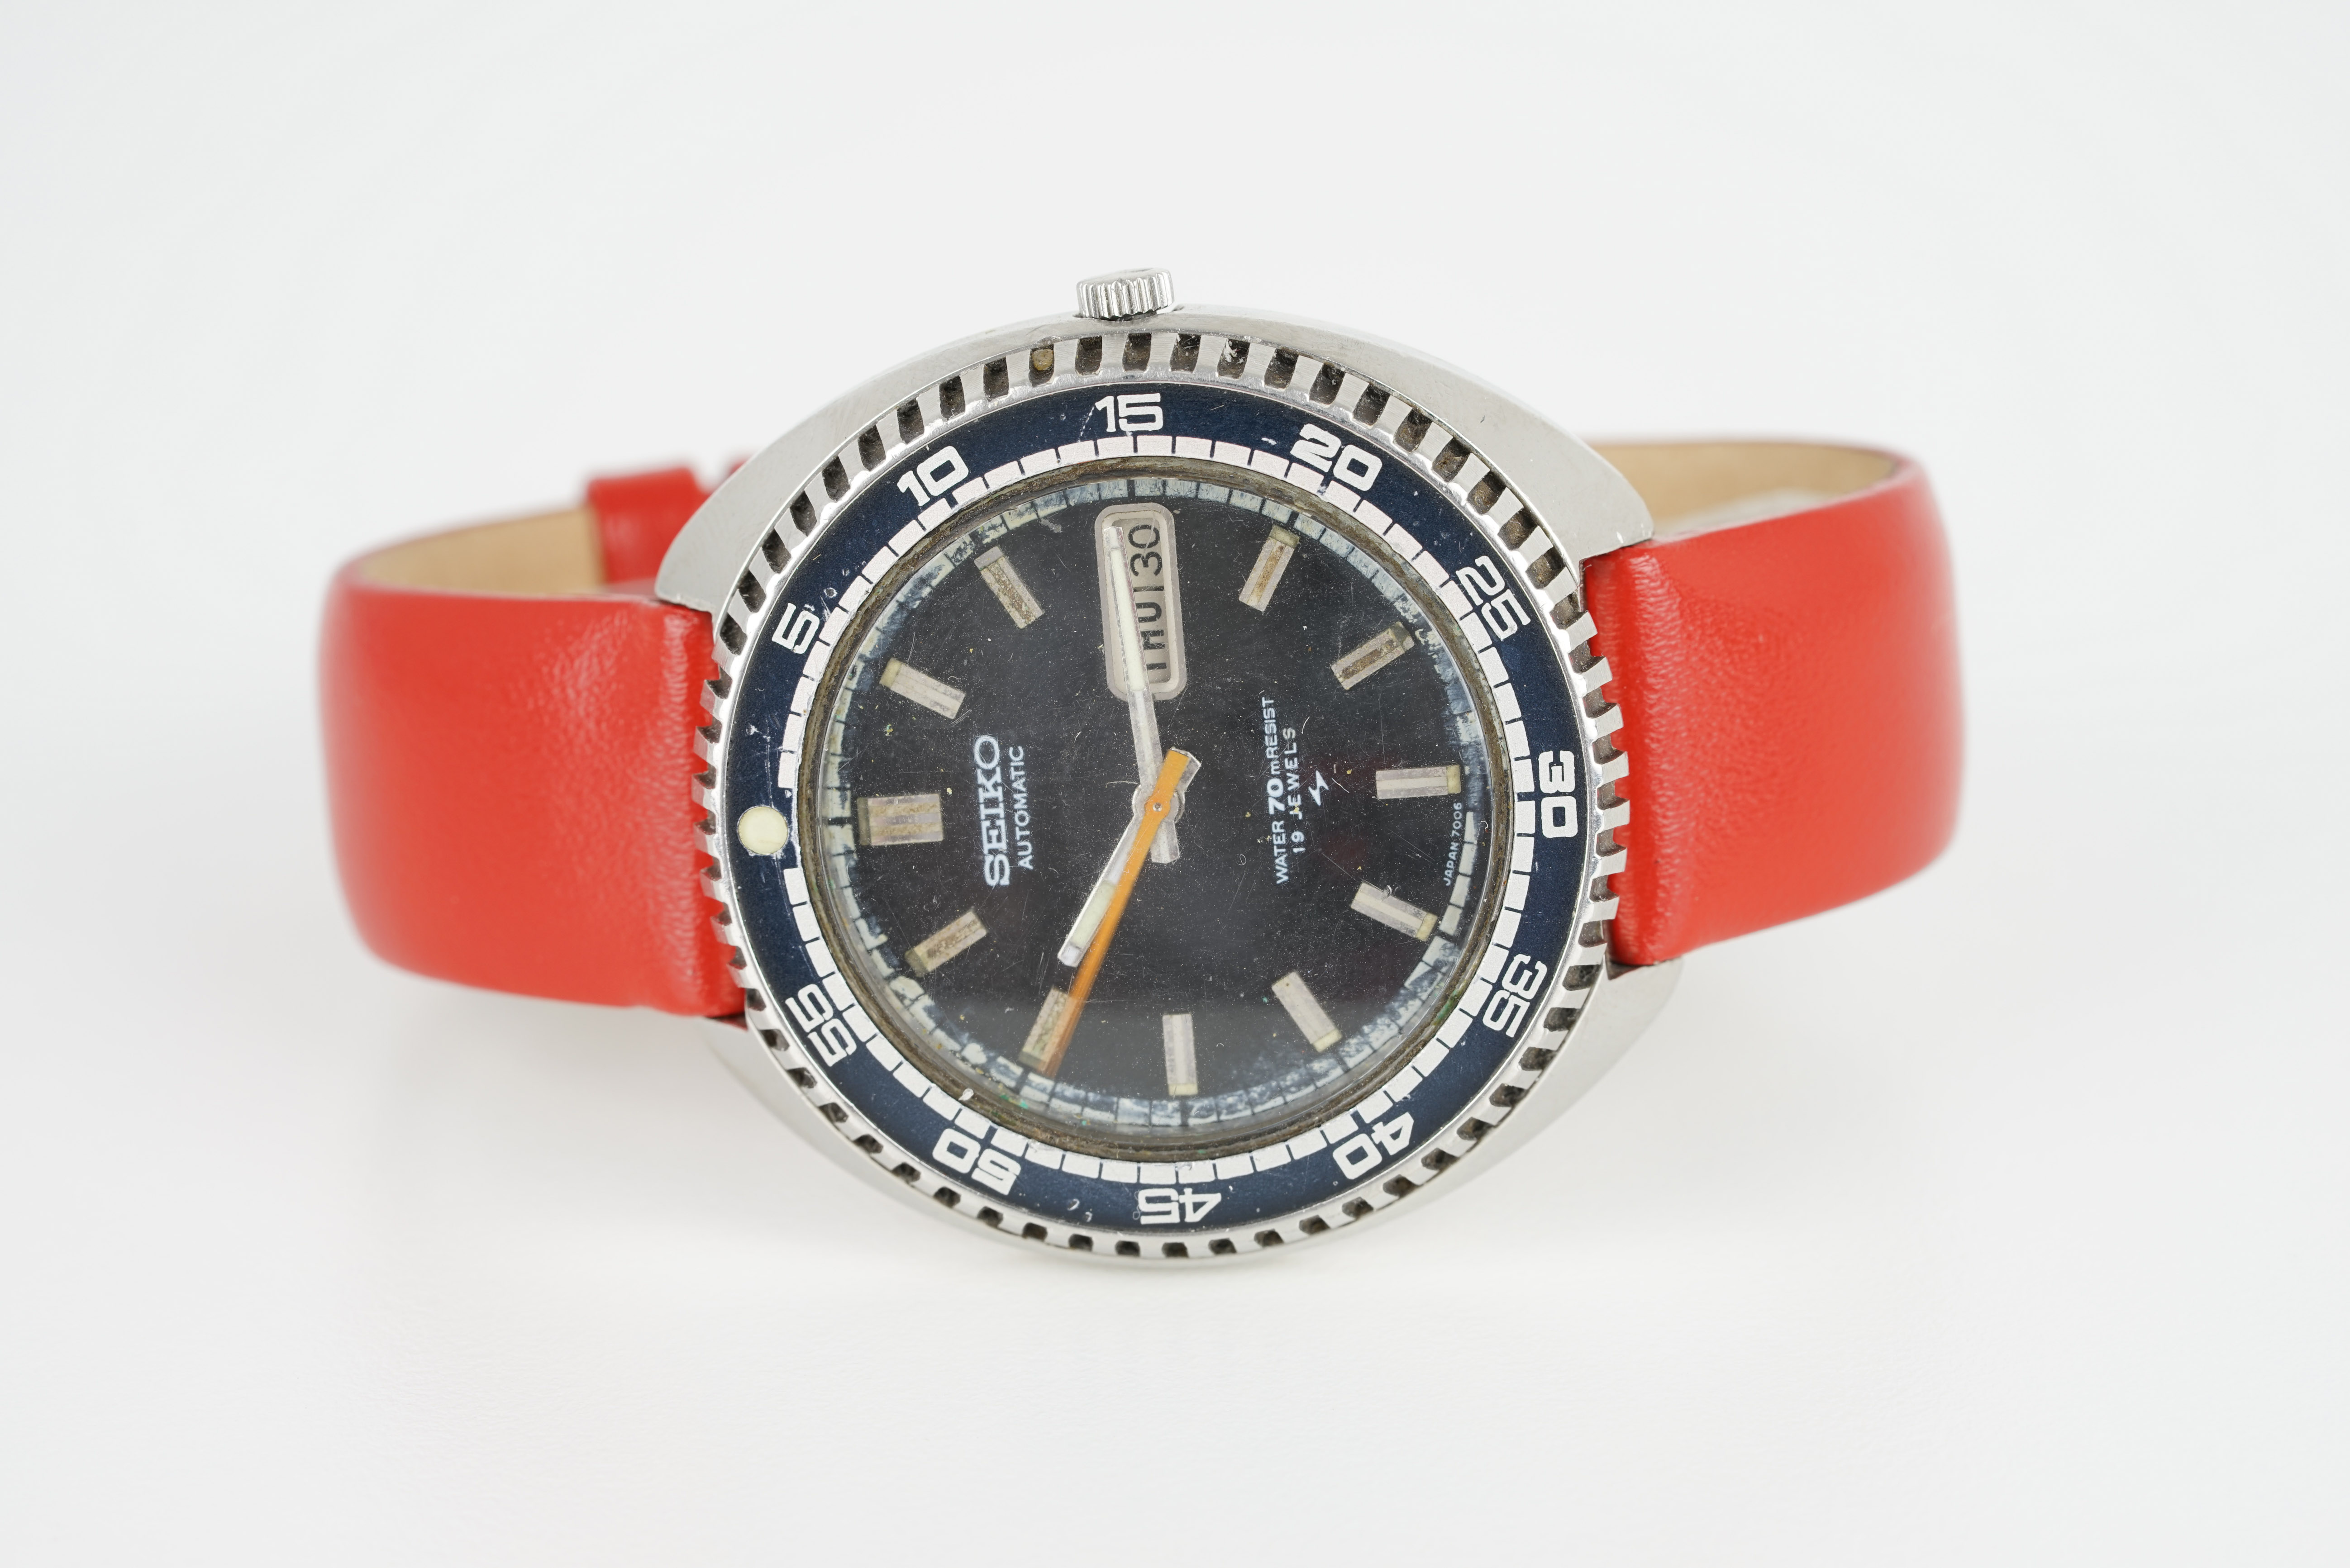 GENTLEMENS SEIKO AUTOMATIC DAY DATE DIVERS WRISTWATCH REF. 7006-8030, circular black dial with block